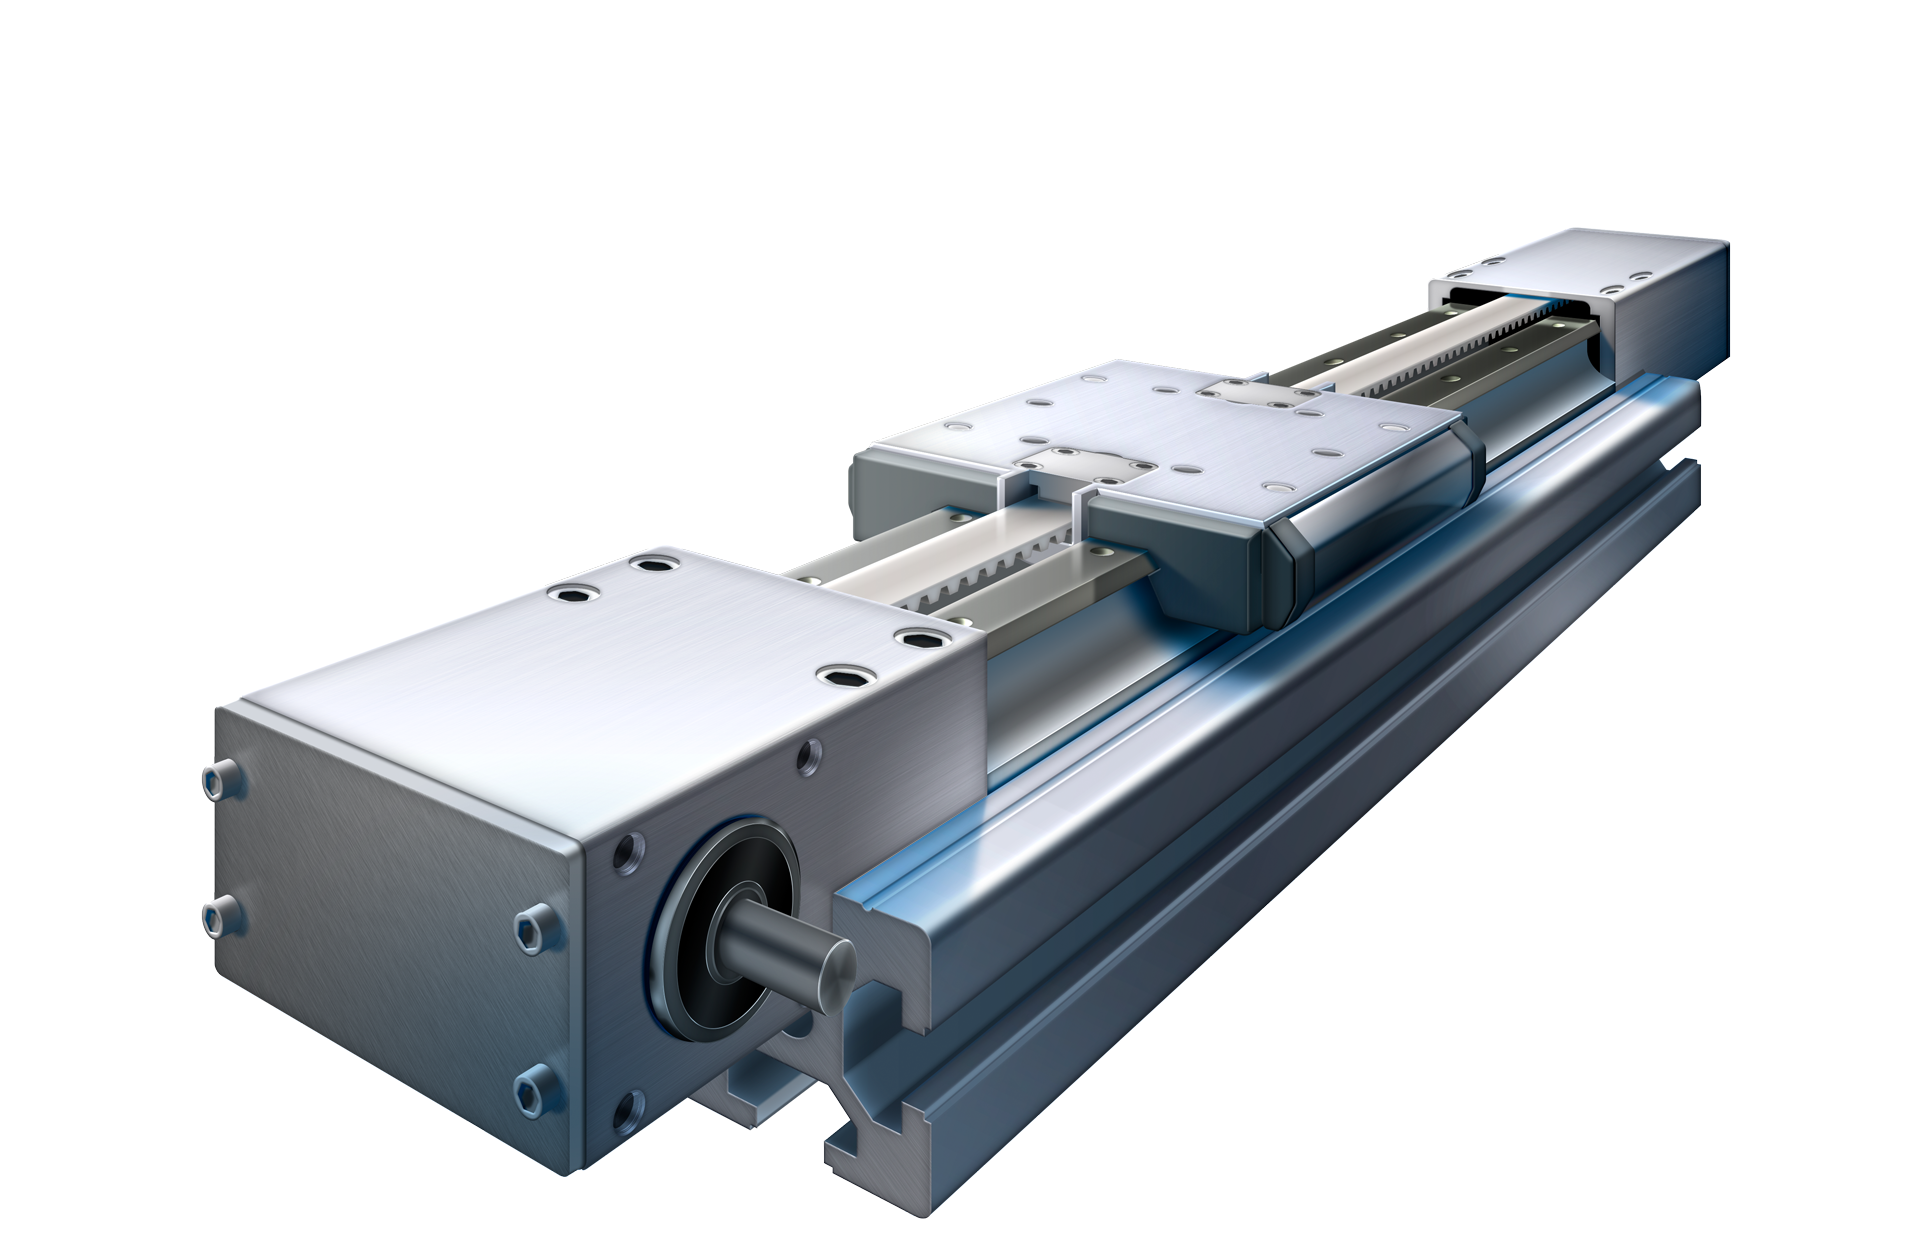 Manufacturing Automation System, Ninetimes, Actuated Linear Guide System, Illustration, Linear Actuator, Bishop Wisecarver, BWC, Linear Motion Systems